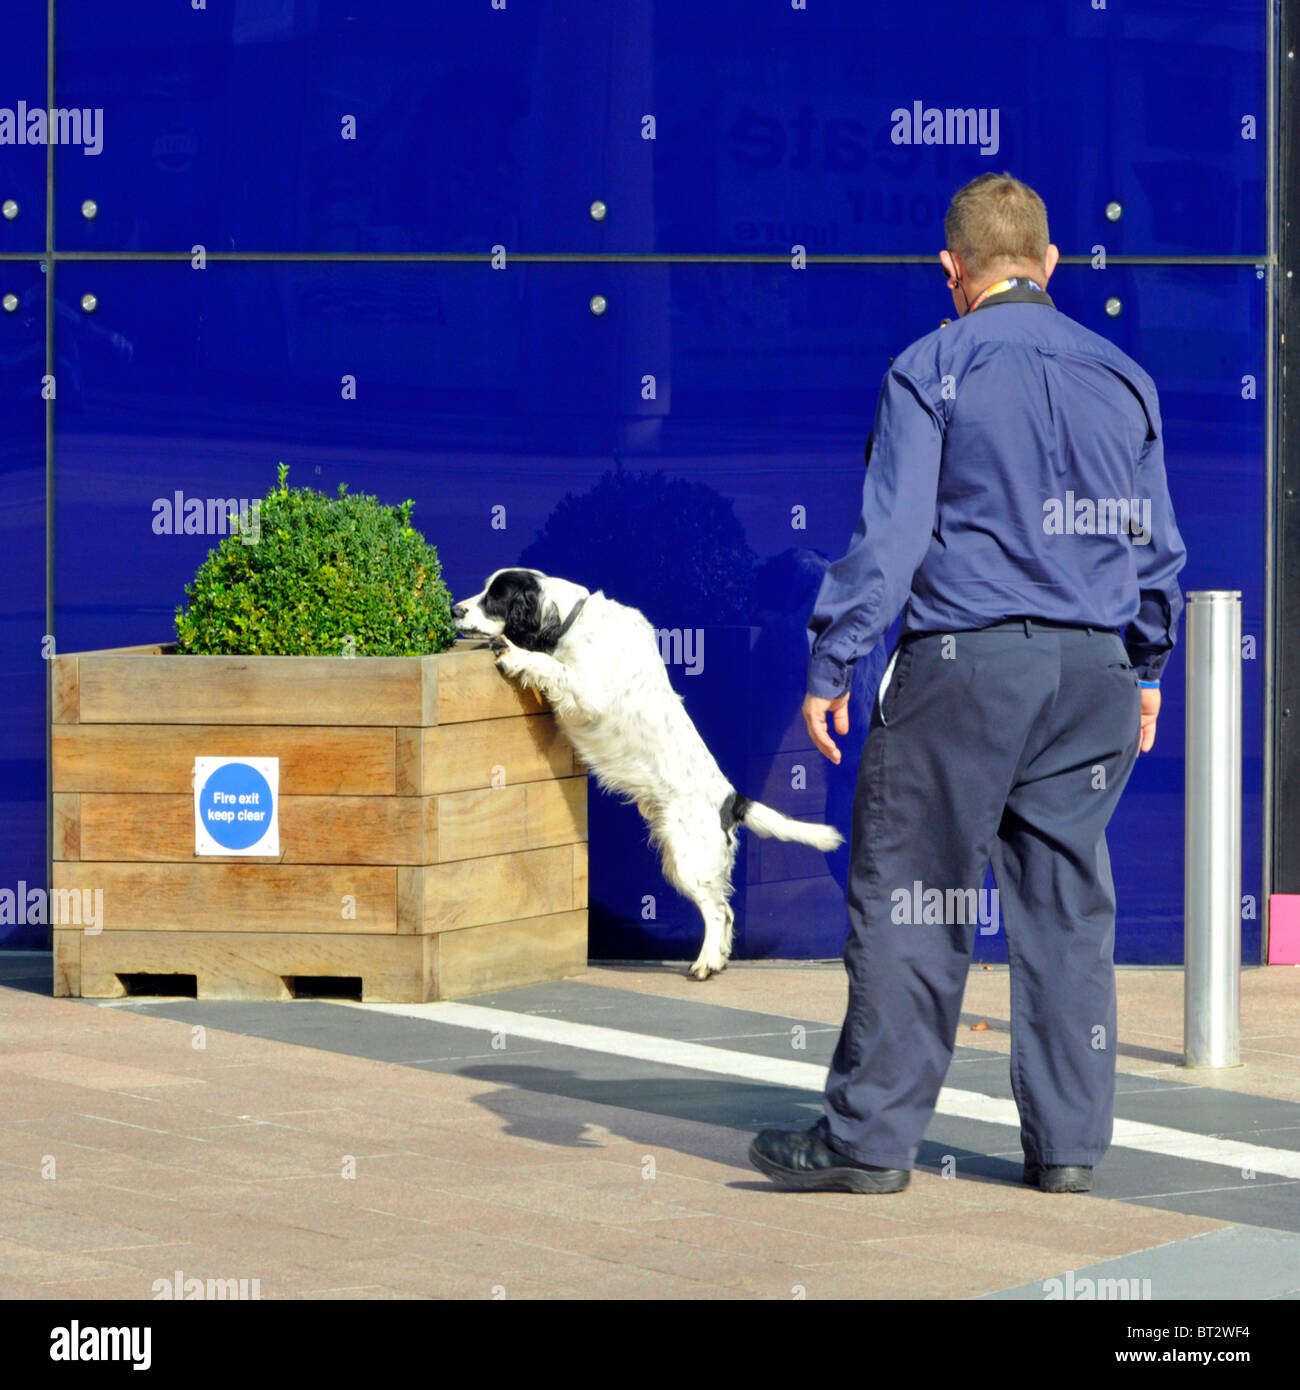 Sniffer dog checking major events venue in London - Stock Image